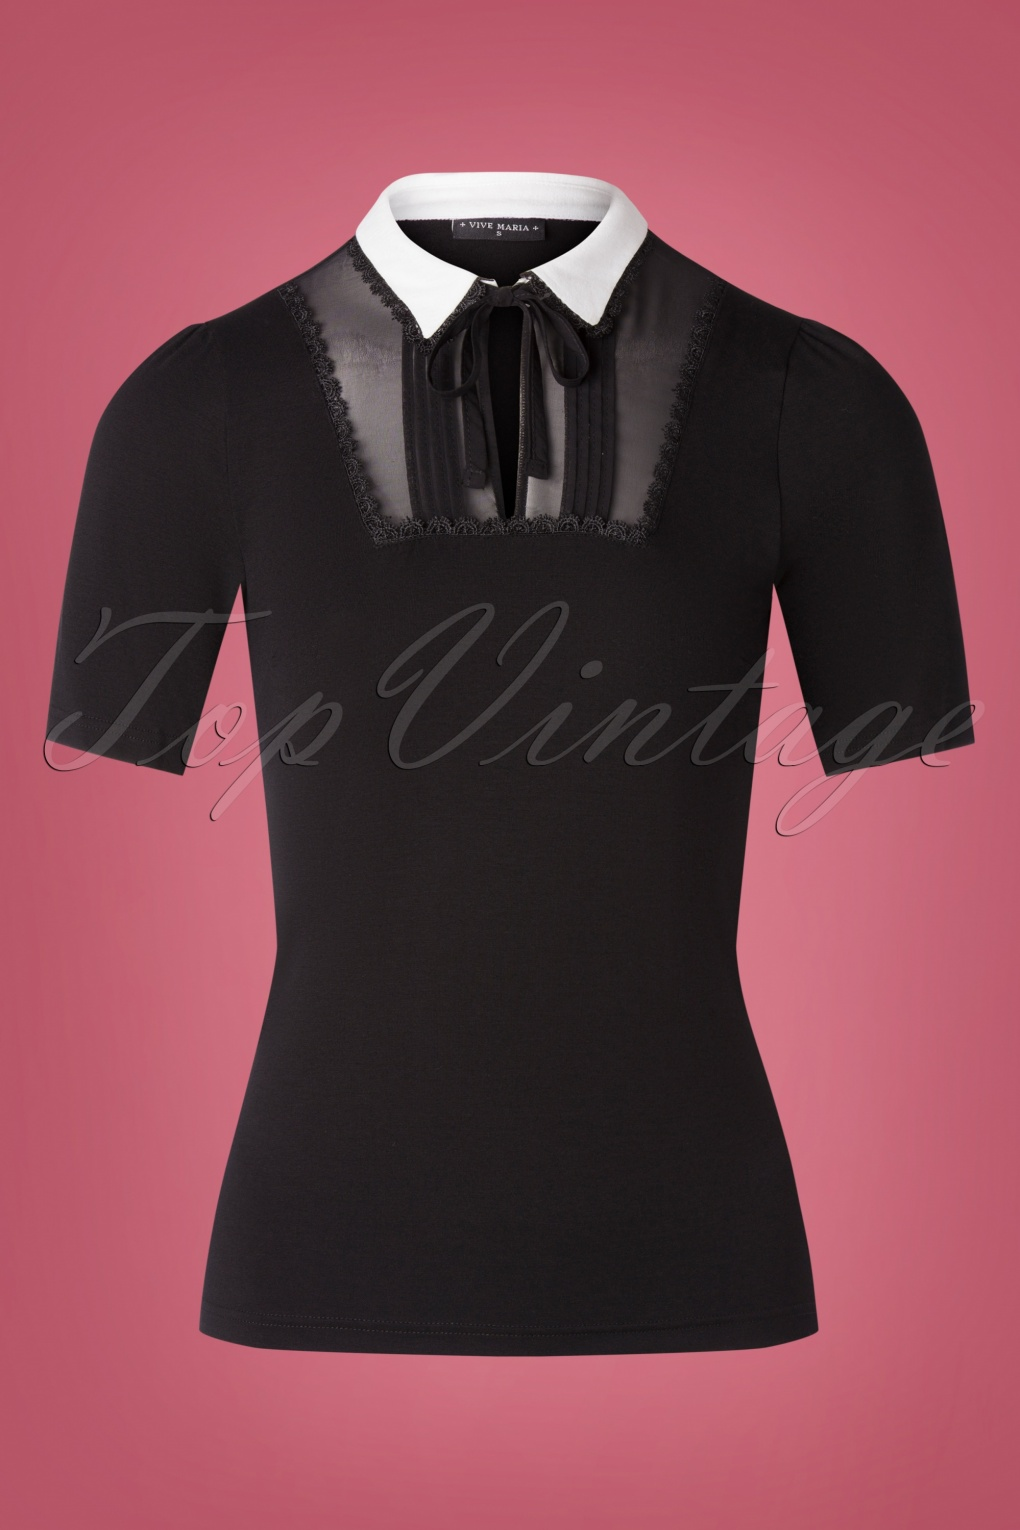 Vintage Inspired Dresses & Clothing UK 60s French Chic Shirt in Black £49.22 AT vintagedancer.com